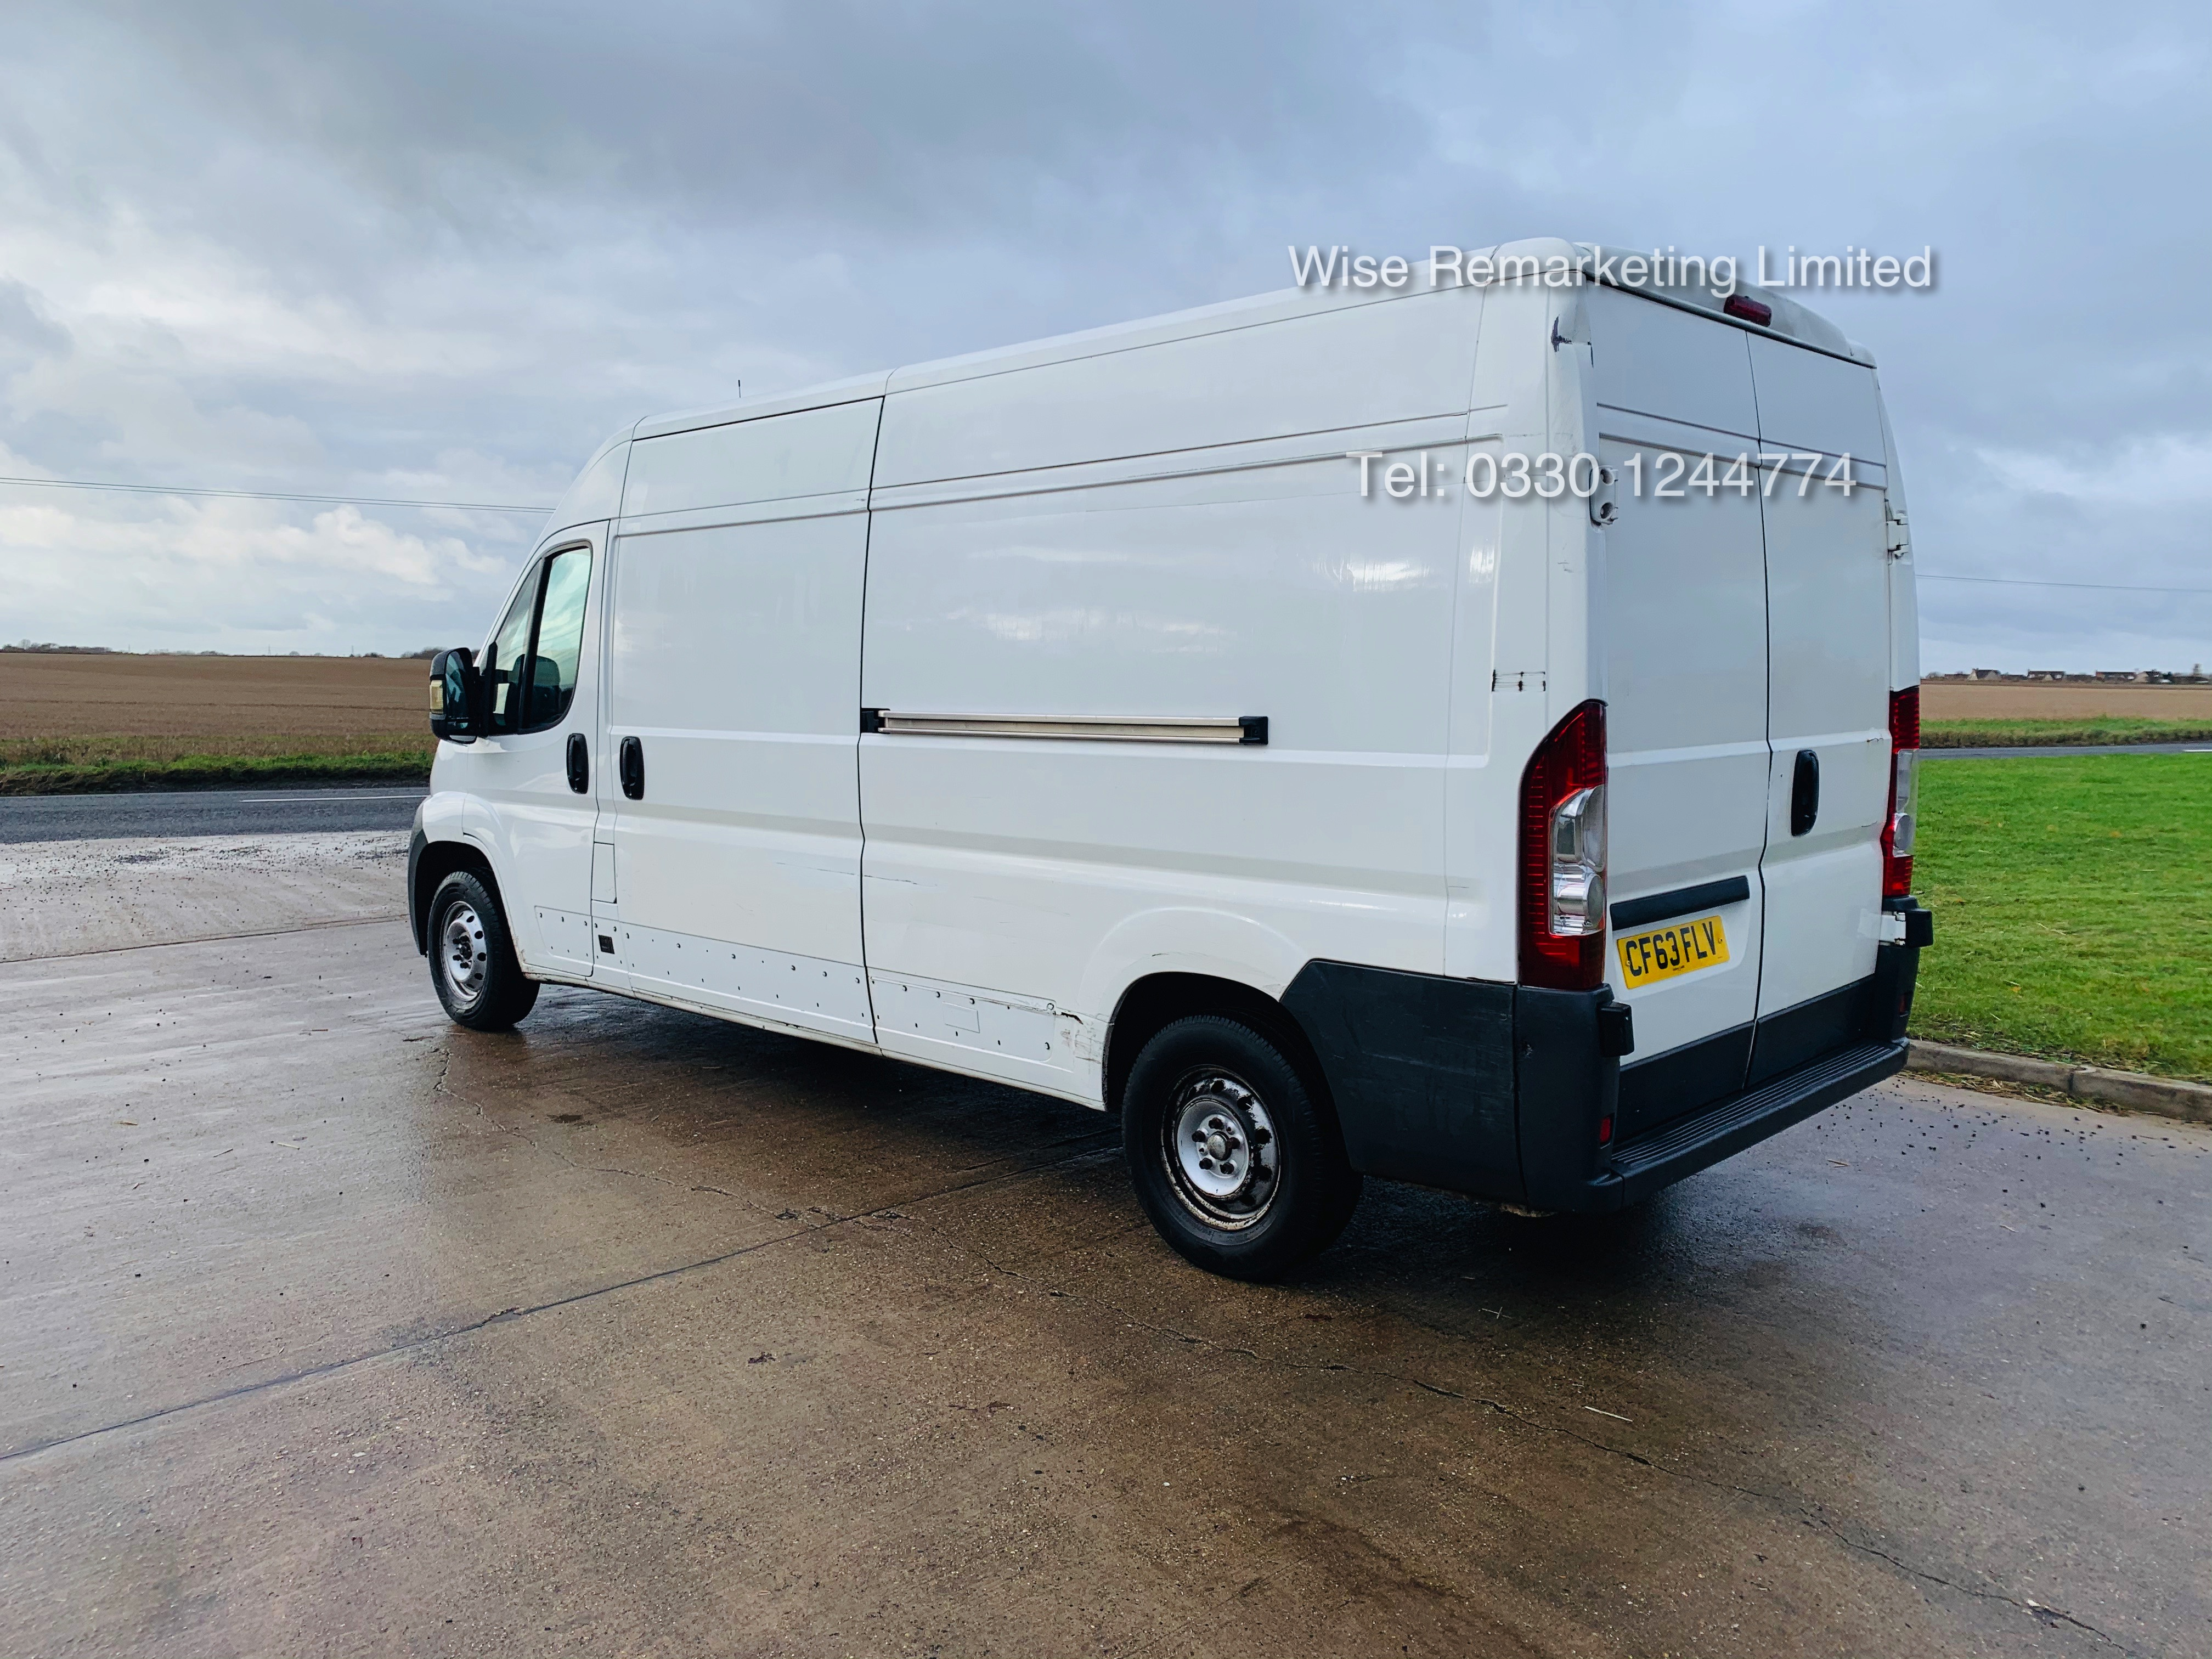 Lot 29 - Peugeot Boxer 335 2.2 HDi (L3H2) 2014 Model - 1 Keeper From New - Long Wheel Base